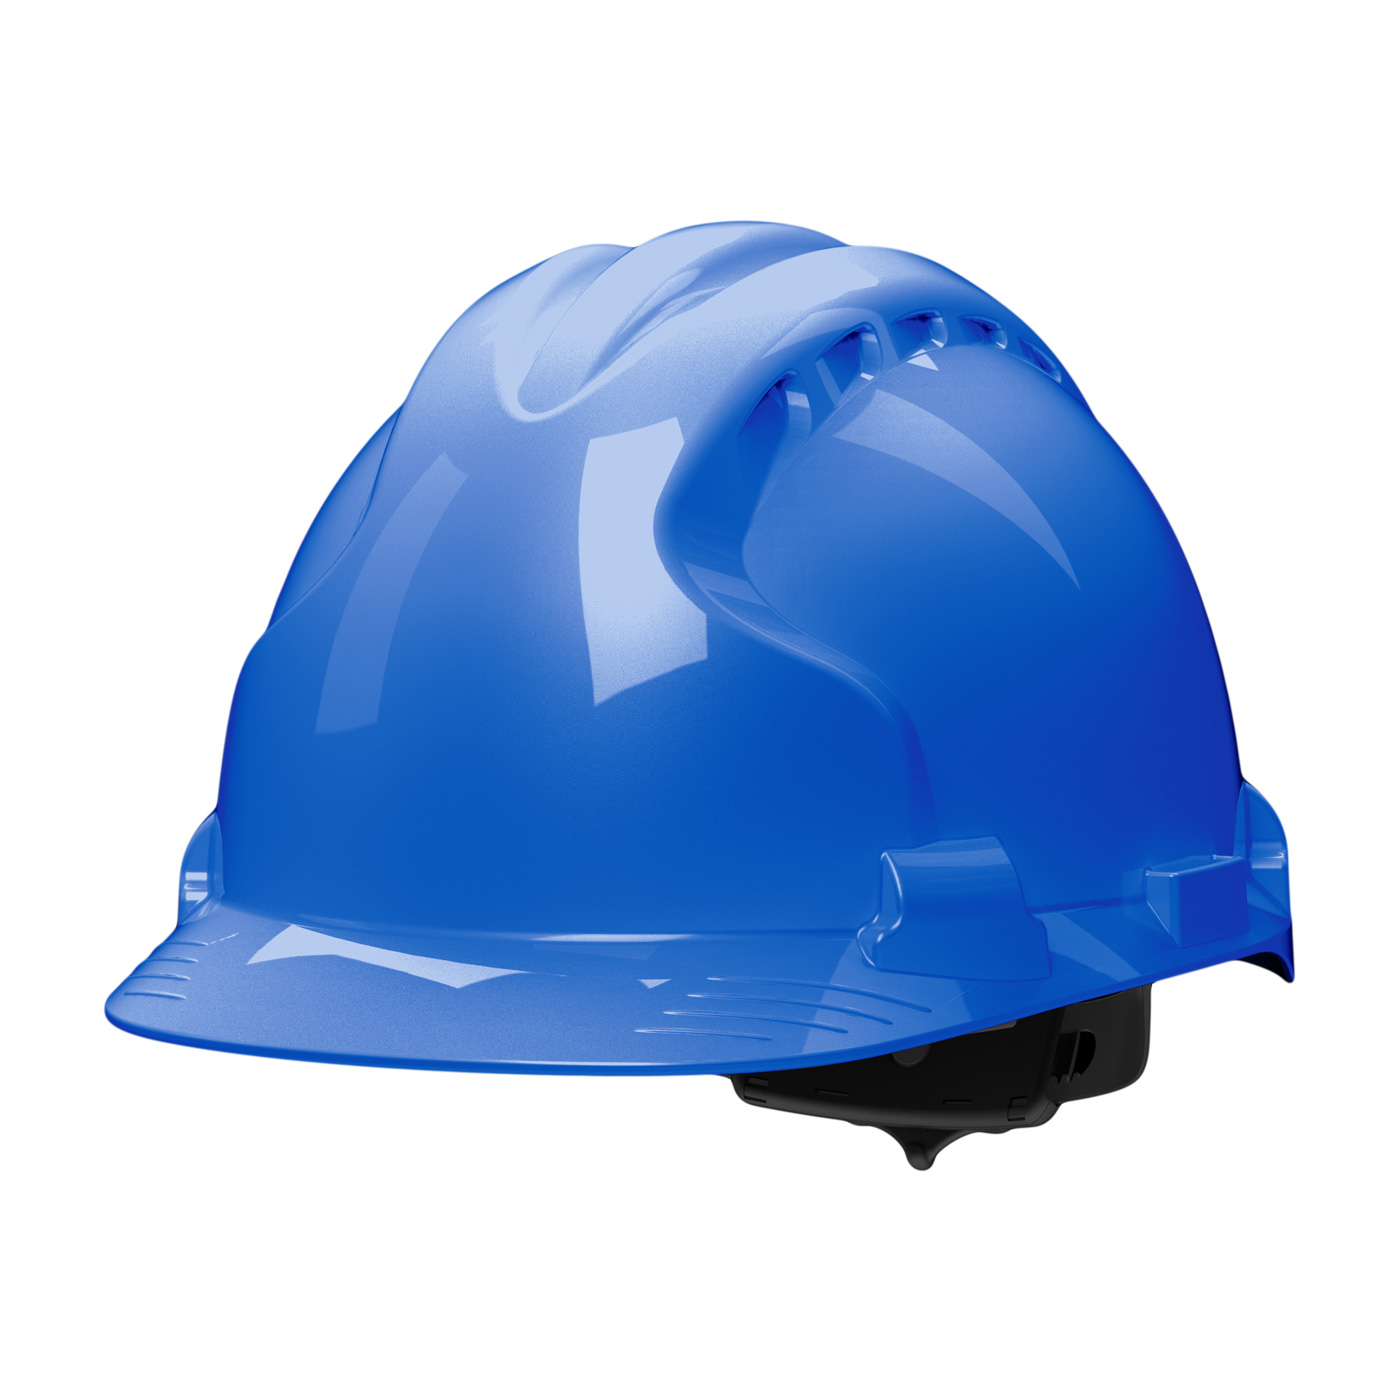 Type II Hard Hat with HDPE Shell, EPS Impact Liner, Polyester Suspension and Wheel Ratchet Adjustment, Blue, OS